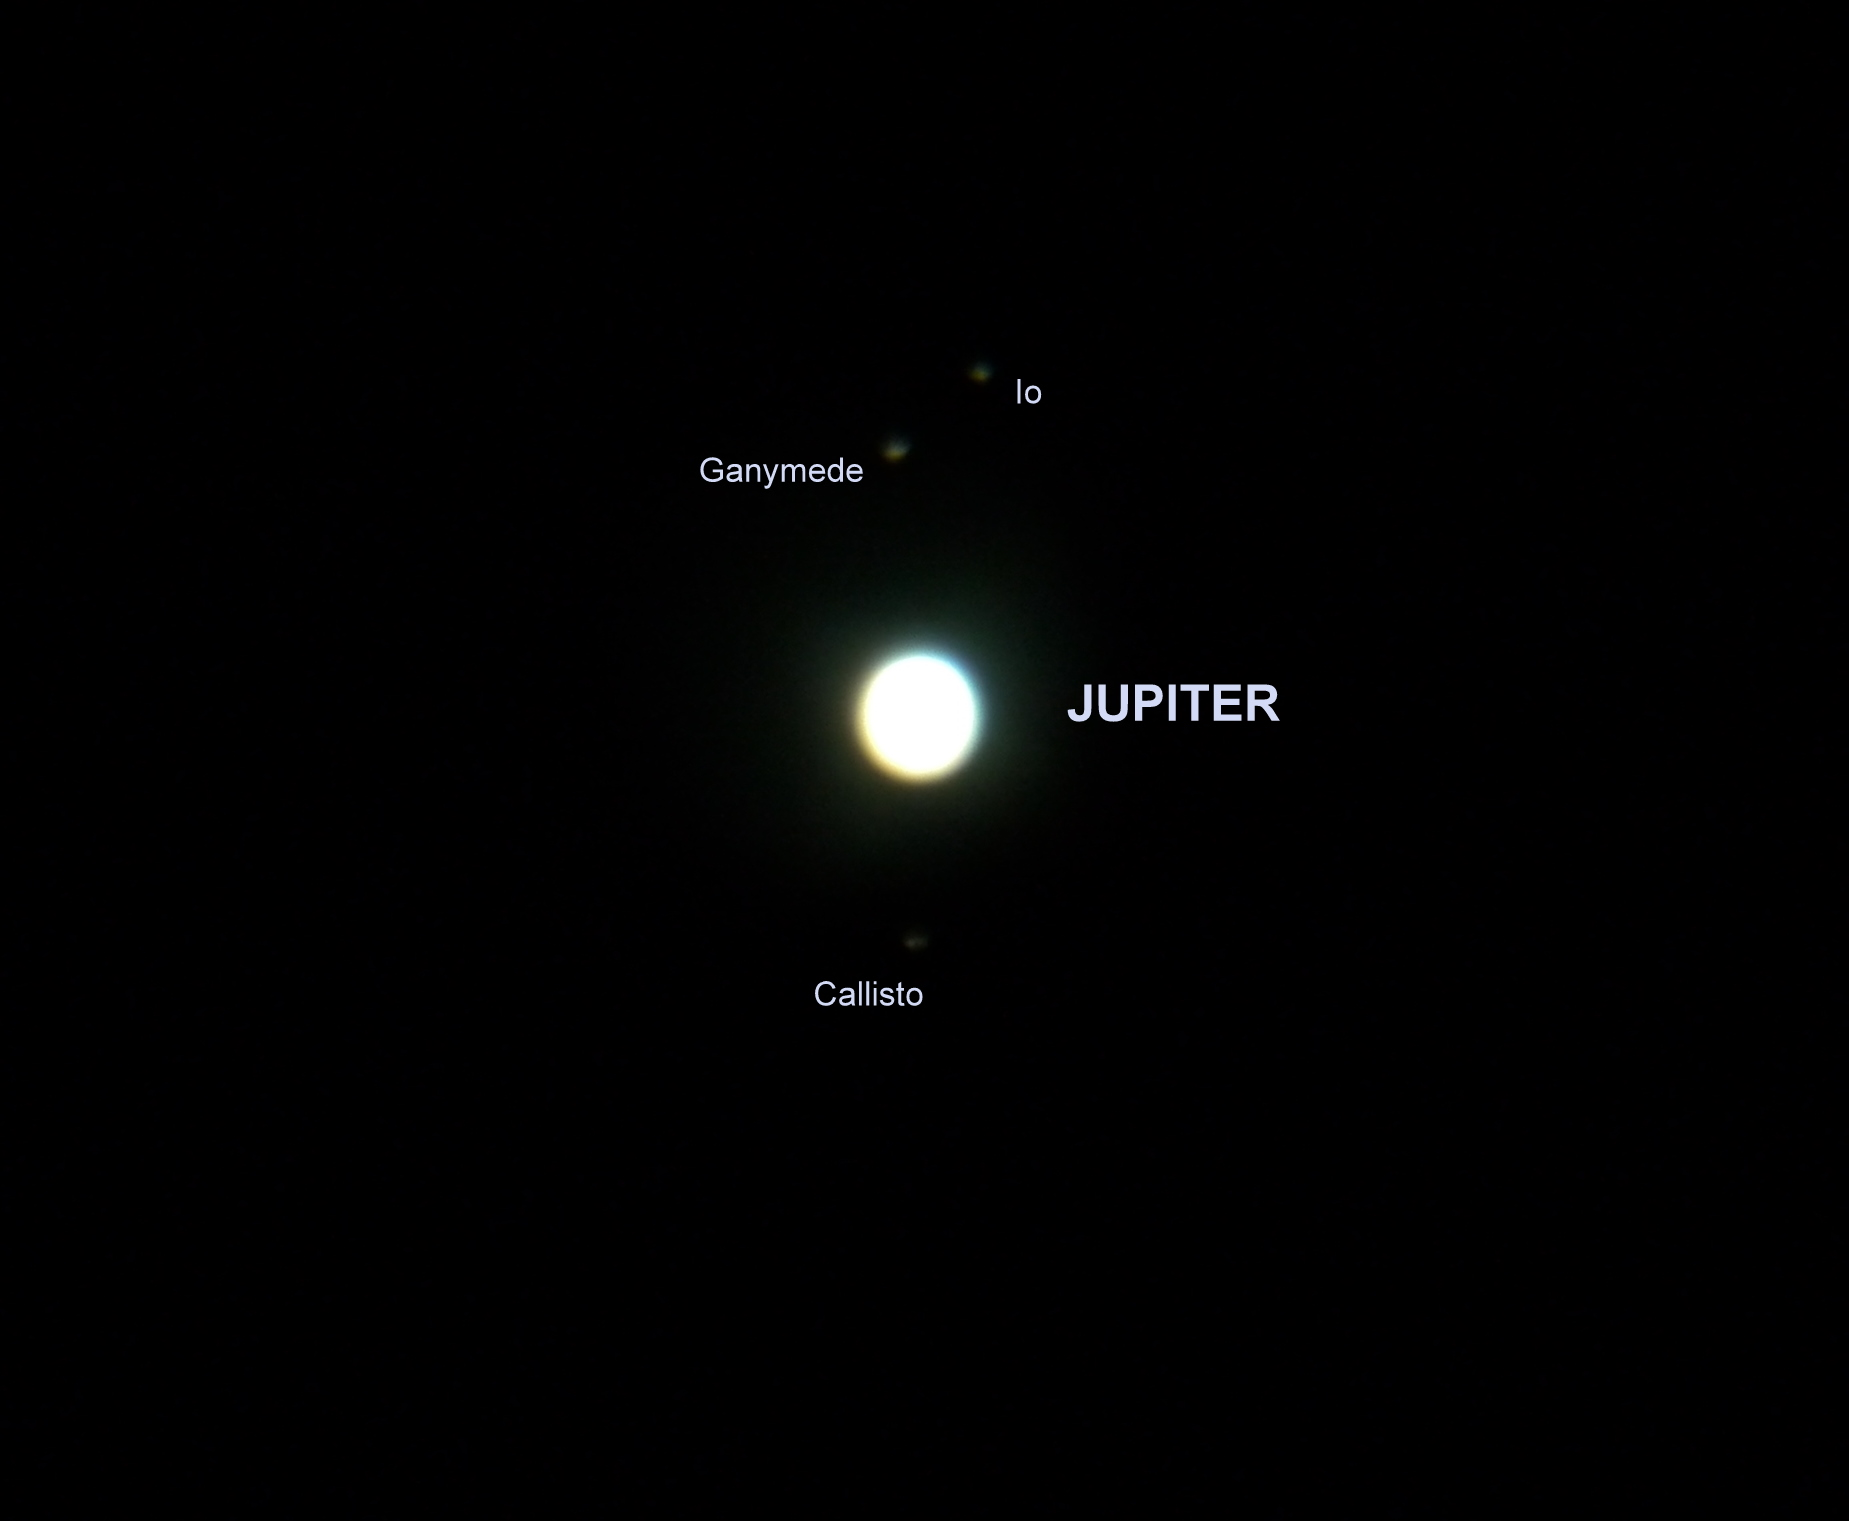 jupiter and its galilean moons I first took a picture of jupiter and its four galilean moons with my 130 mm reflector and a nikon d5000 dslr with a 25mm objective jupiter was overexposed and no details could be seen i then used the neximage ( celestron ) webcam with a 2x barlow to isolate jupiter 597 frames were aligned and stacked with registax.